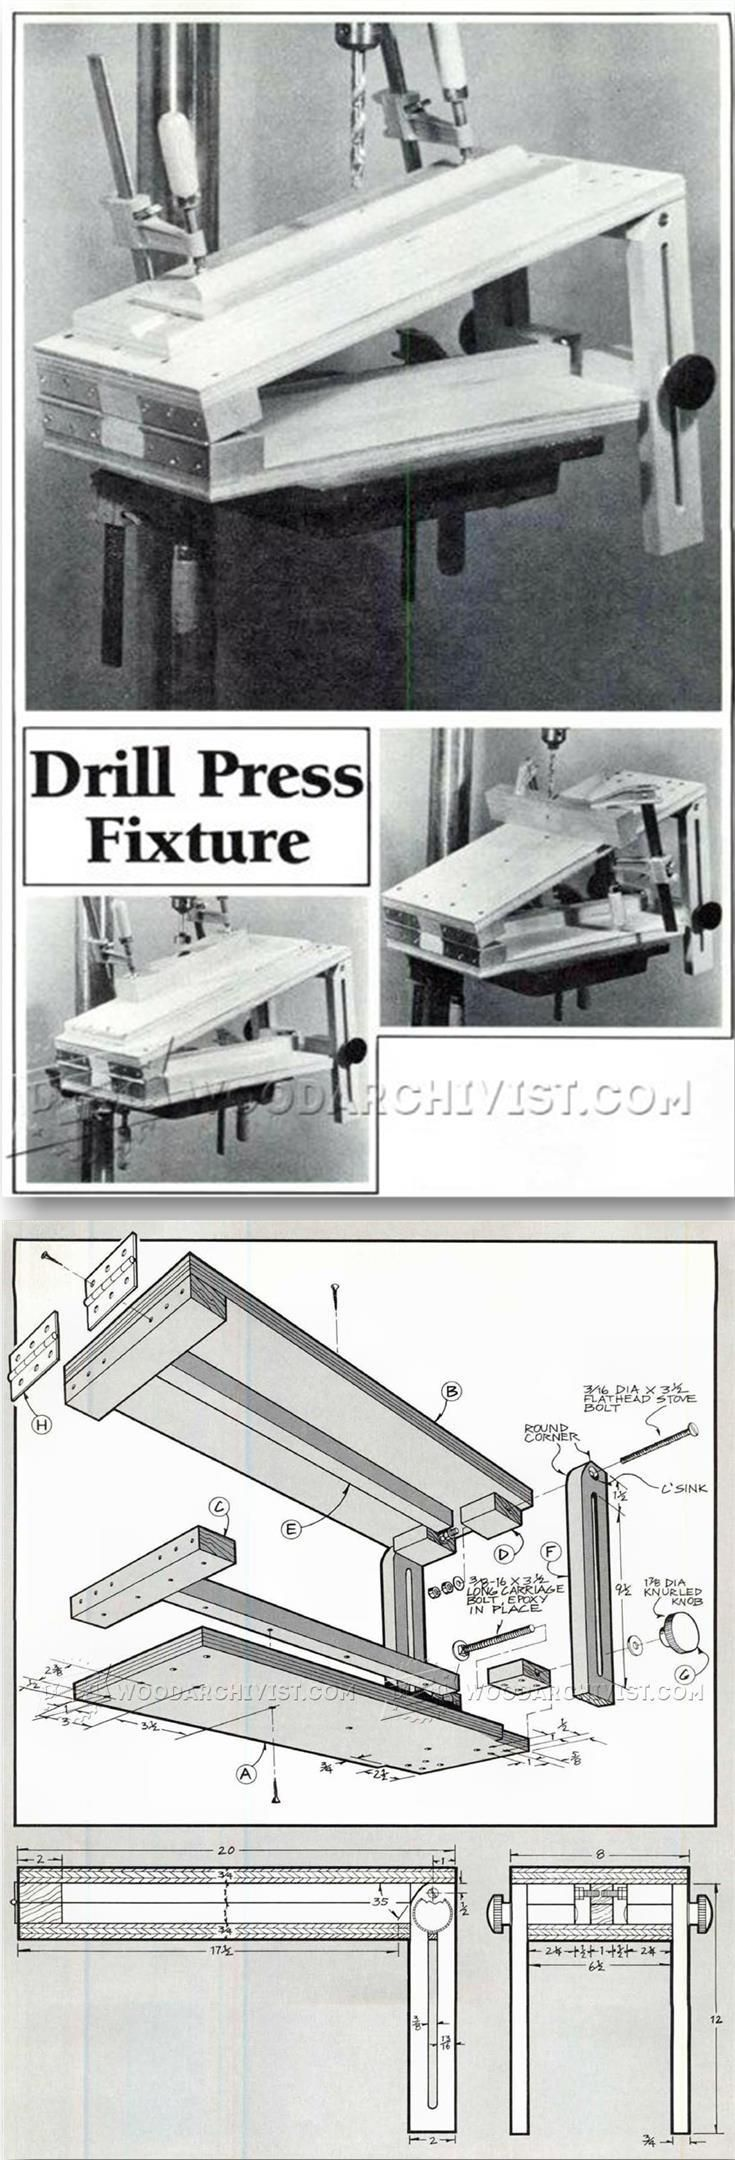 Drill Press Tilt Table Plans - Drill Press Tips, Jigs and Fixtures | WoodArchivist.com